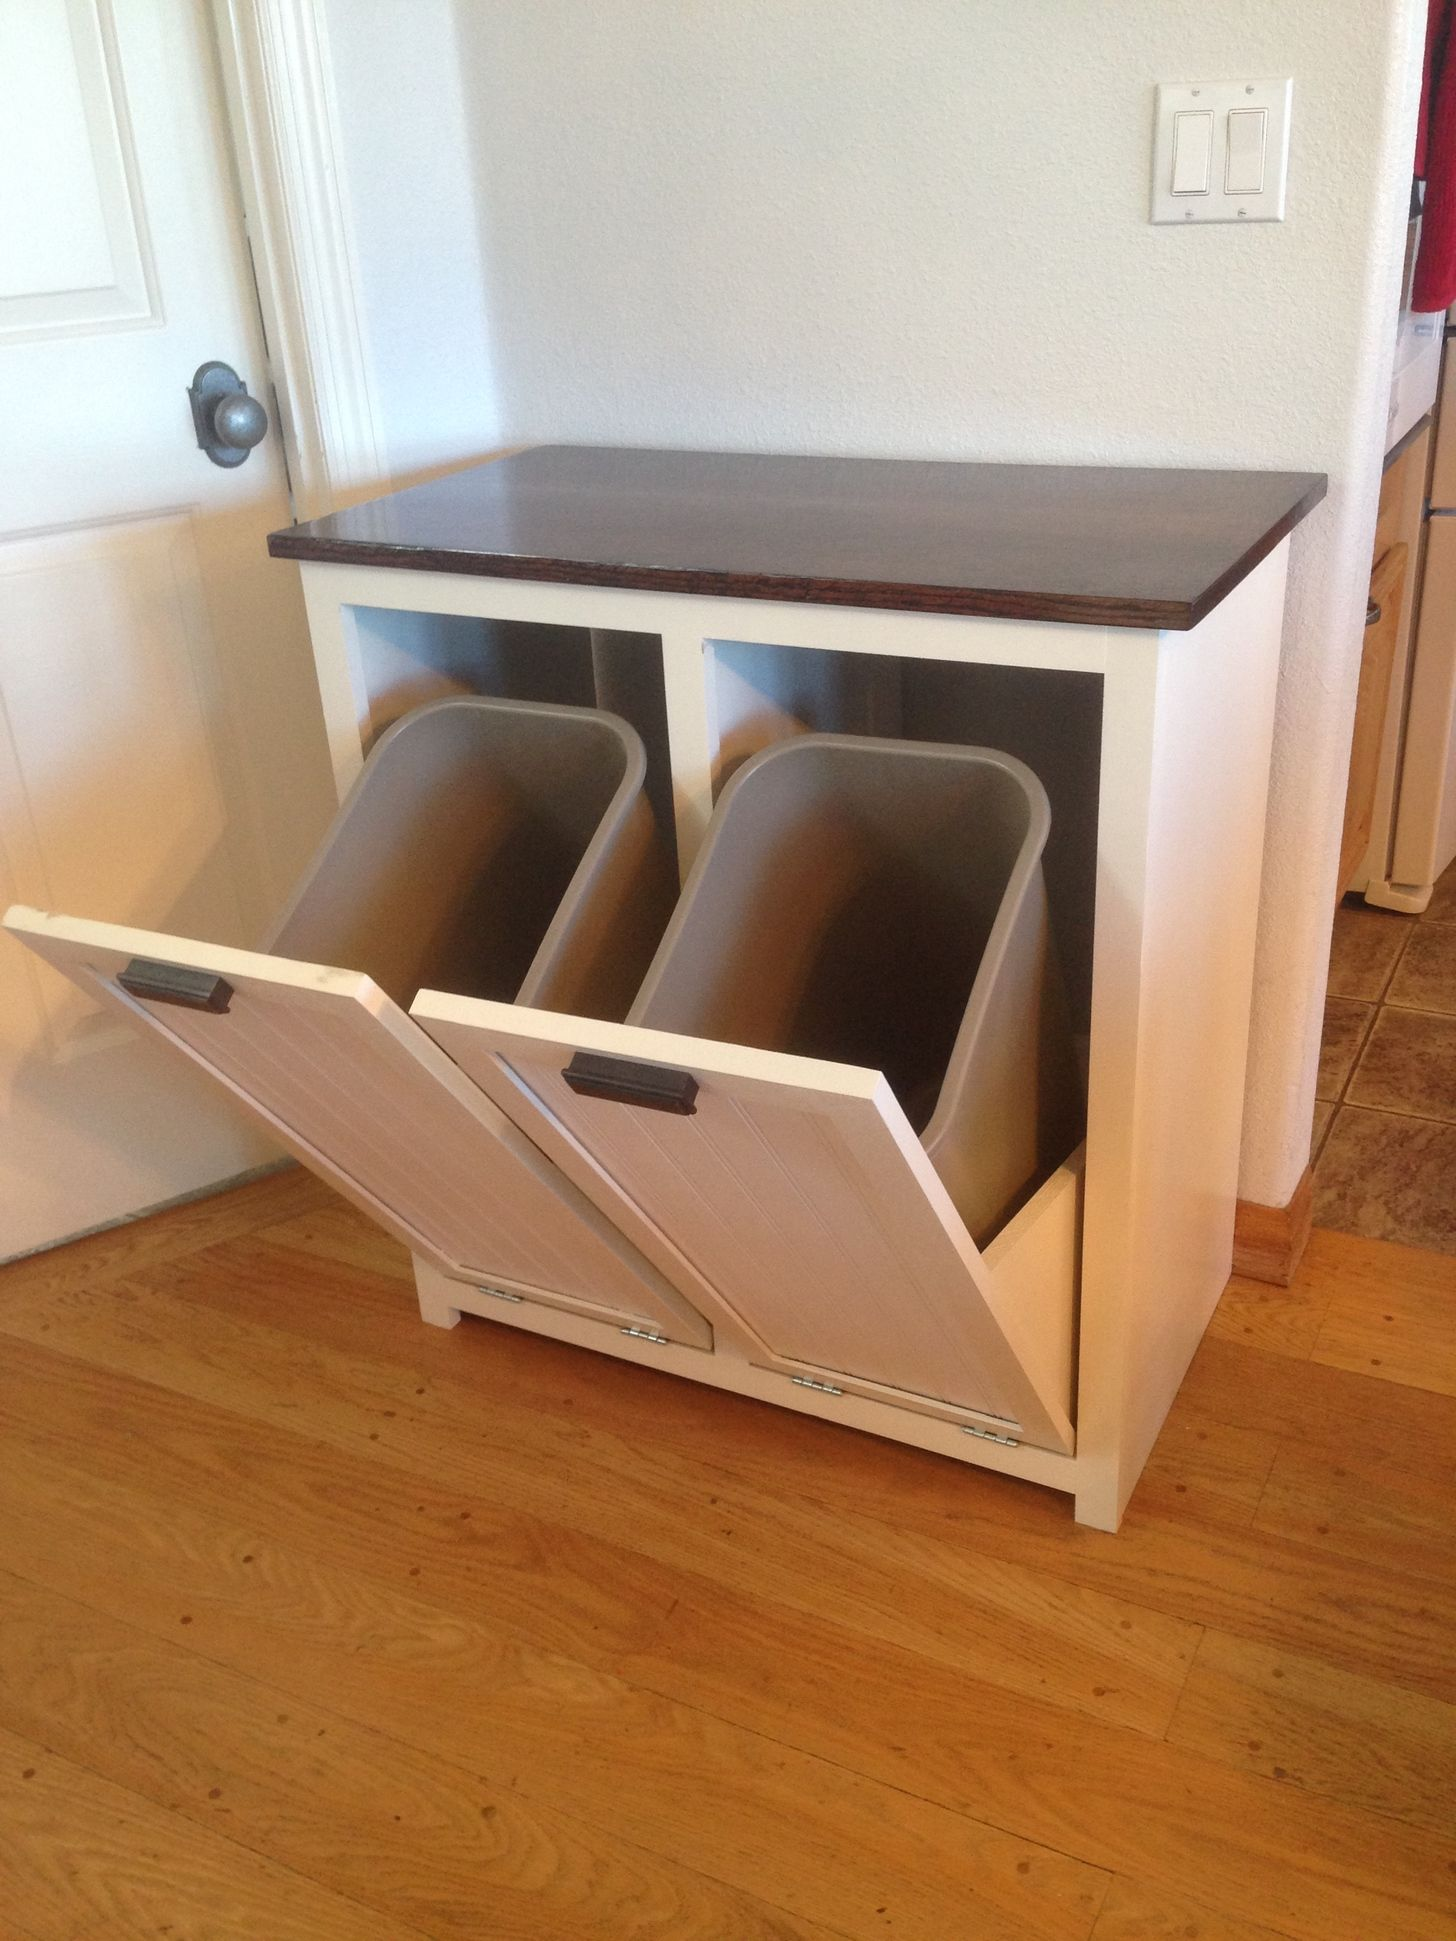 A Tilt Out Garbage And Recycling Cabinet Diy Trash